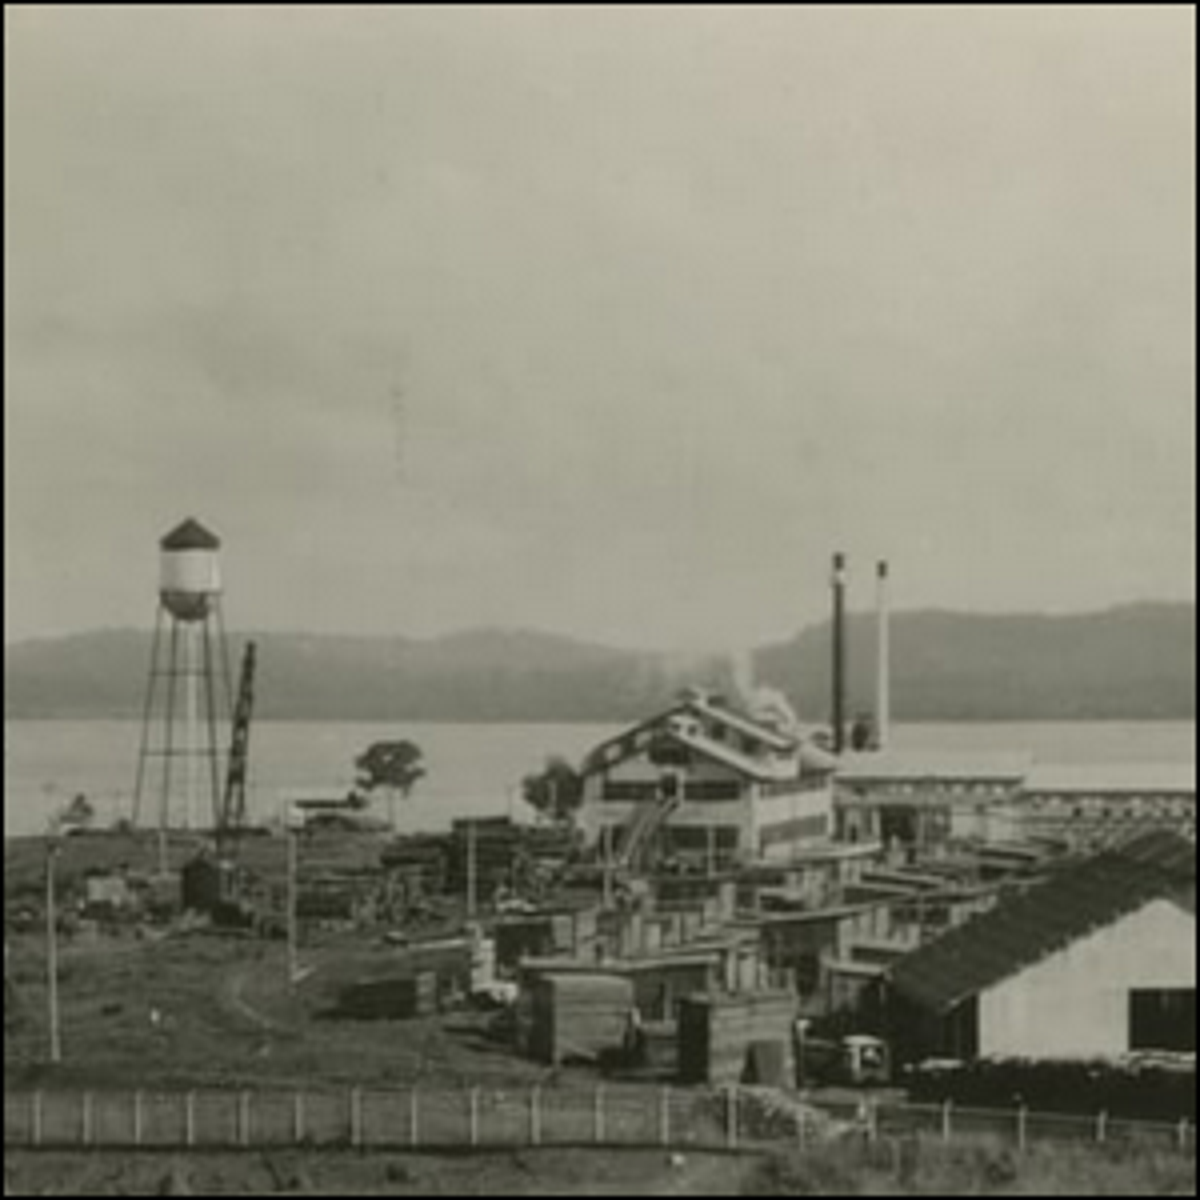 A photo of the small city of Fordlandia after it was built.